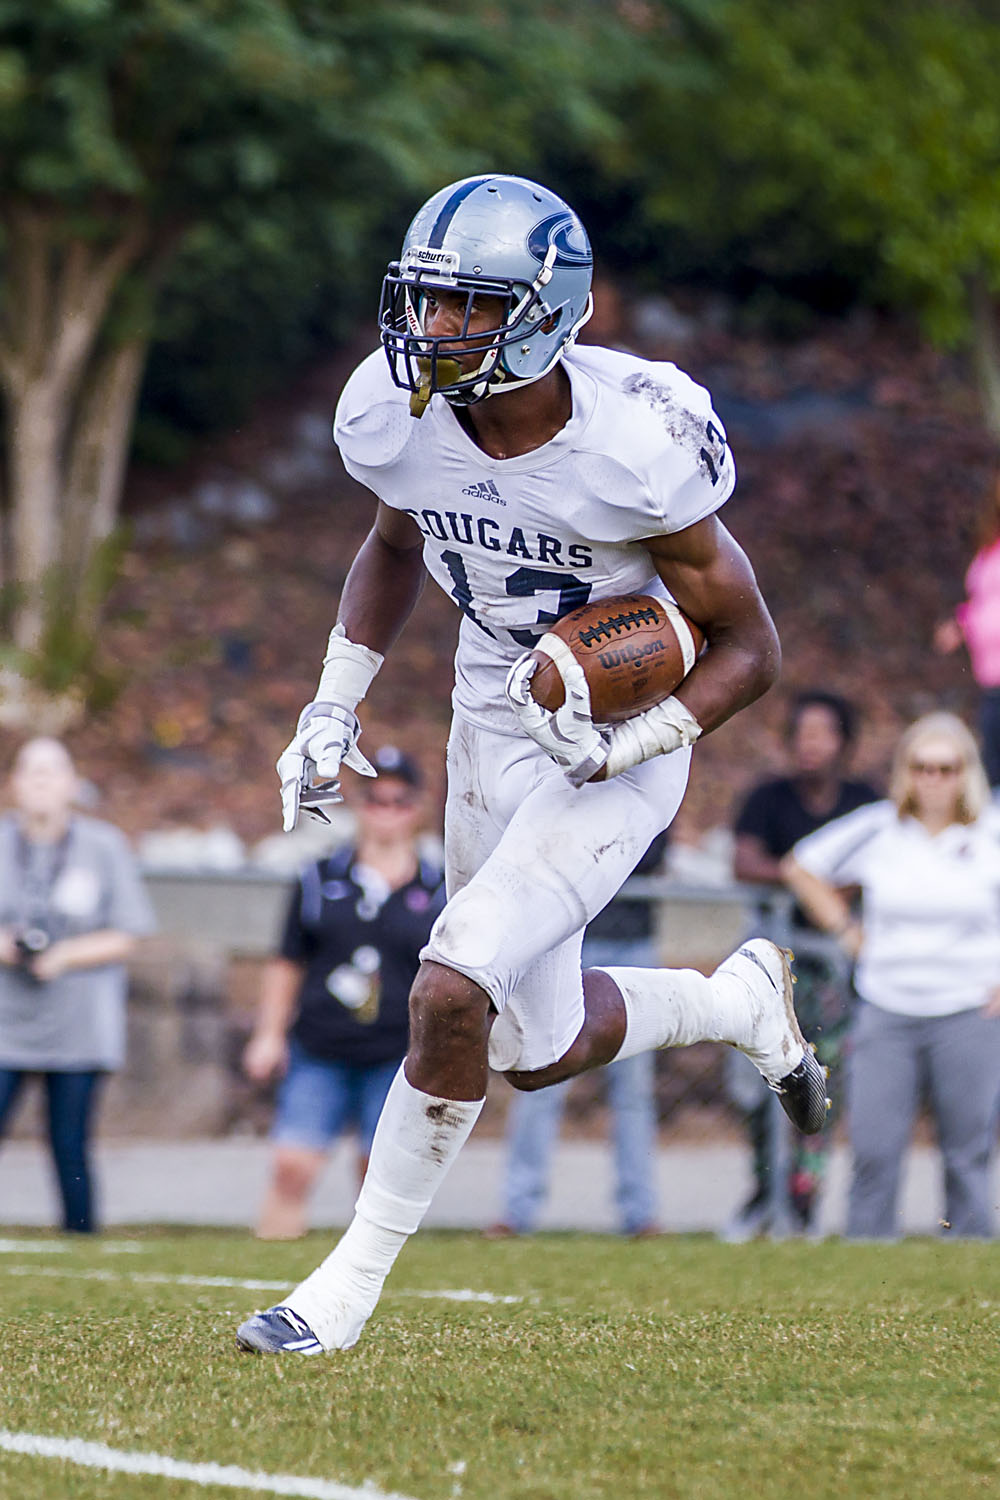 Clay-Chalkville WR commits to Alabama